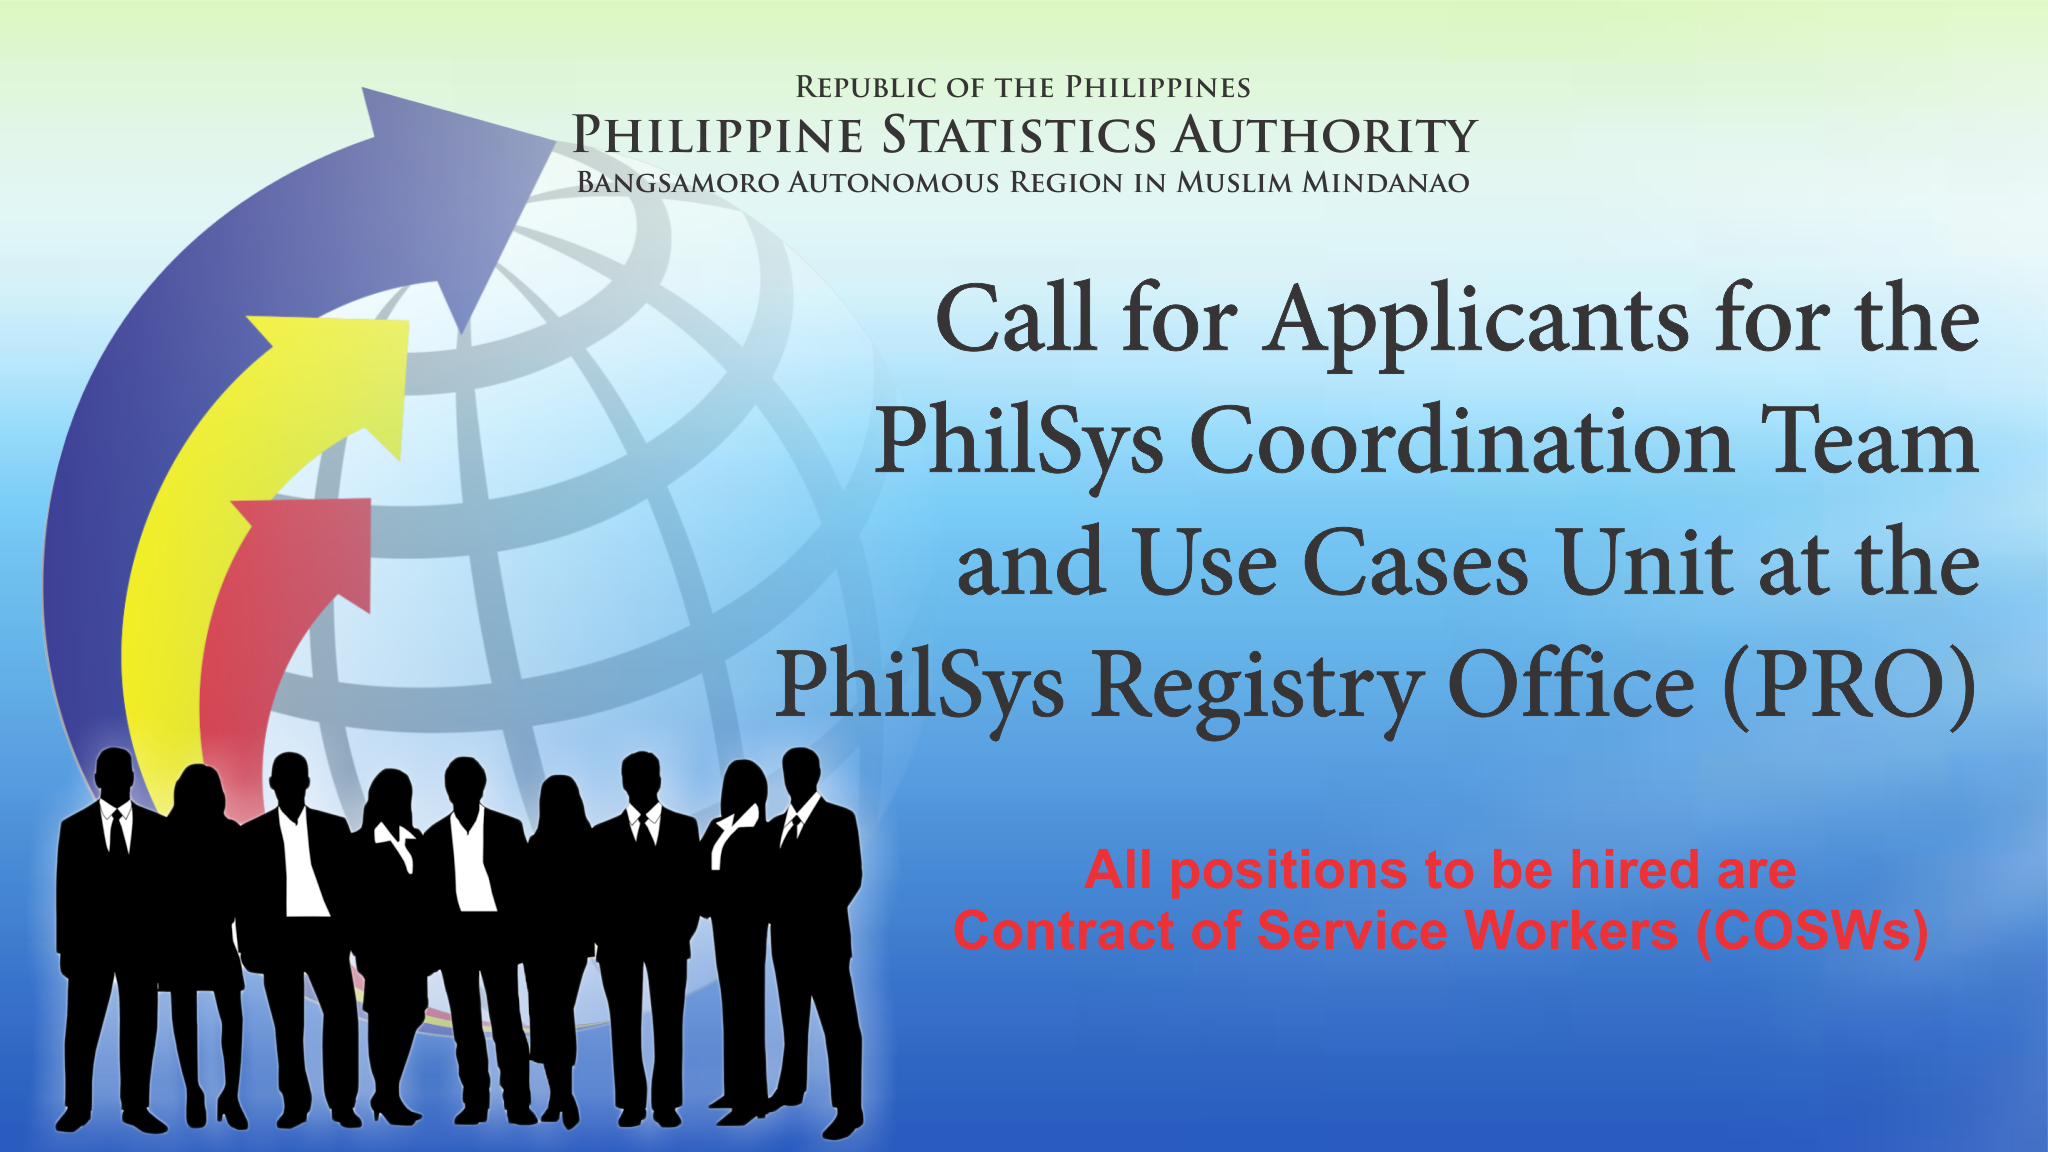 Call for Applicants for the PhilSys Coordination Team and Use Cases Unit at the PhilSys Registry Office (PRO)